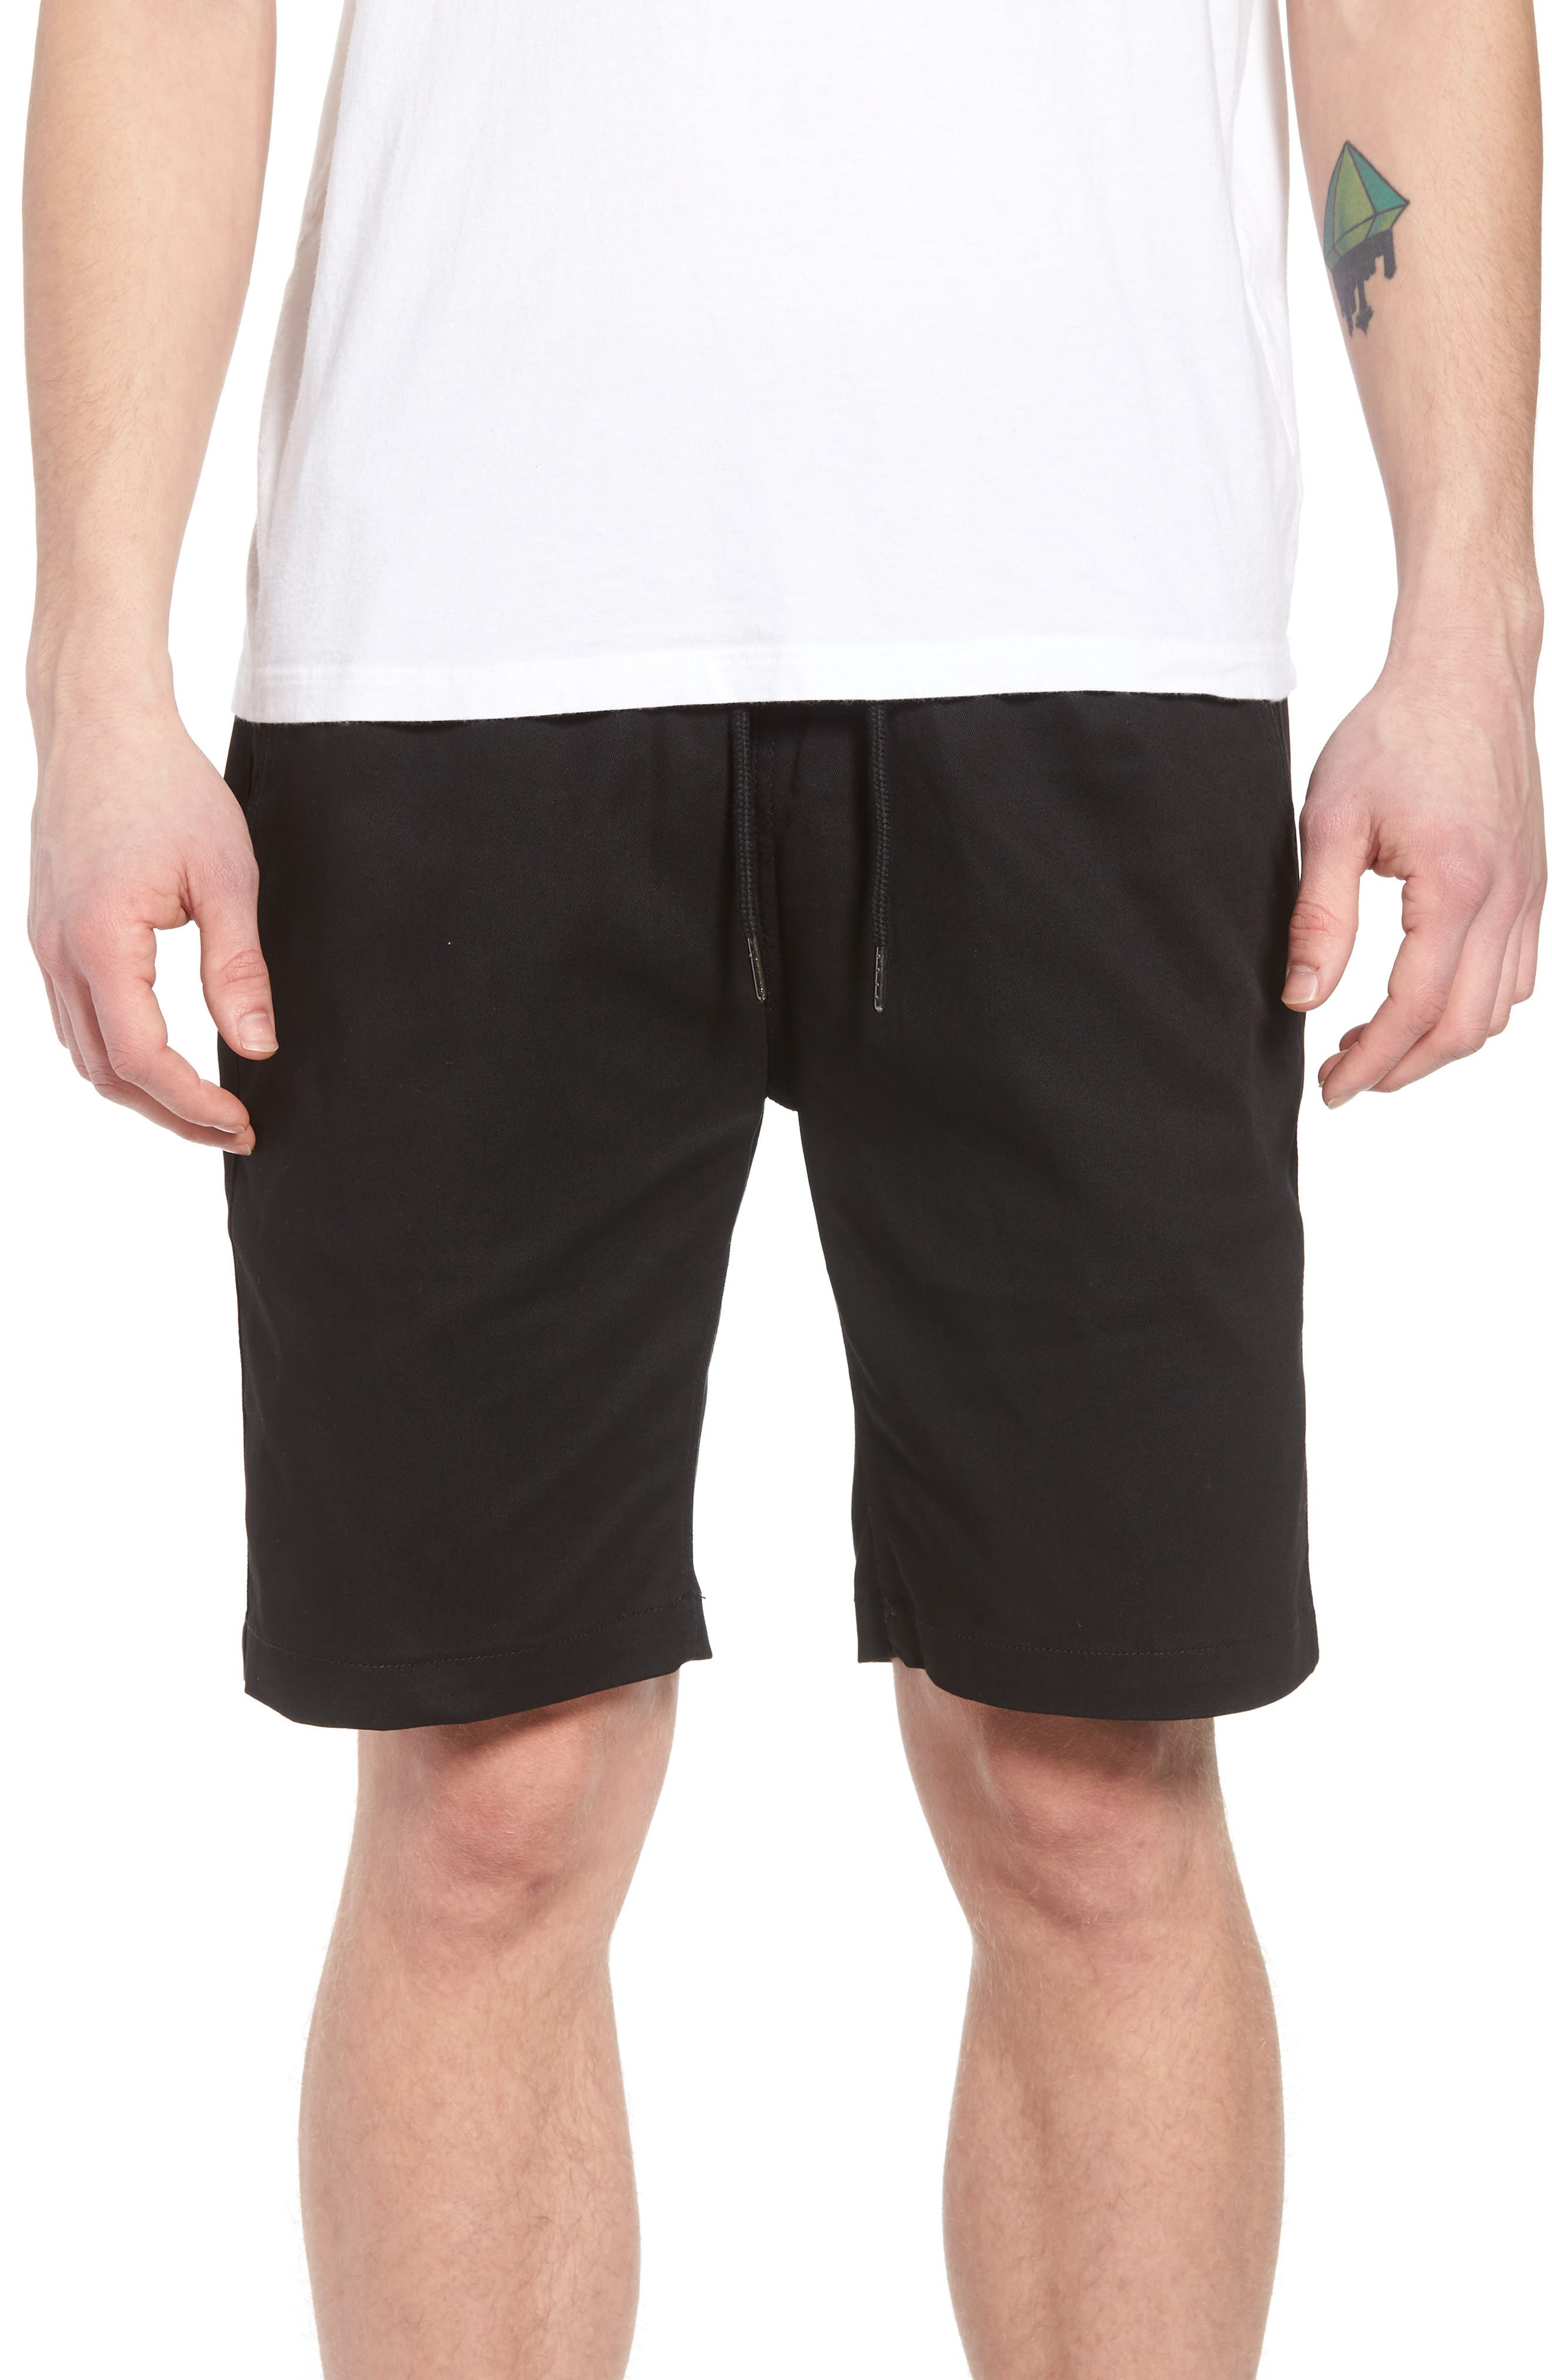 Runner Shorts,                             Main thumbnail 1, color,                             Black